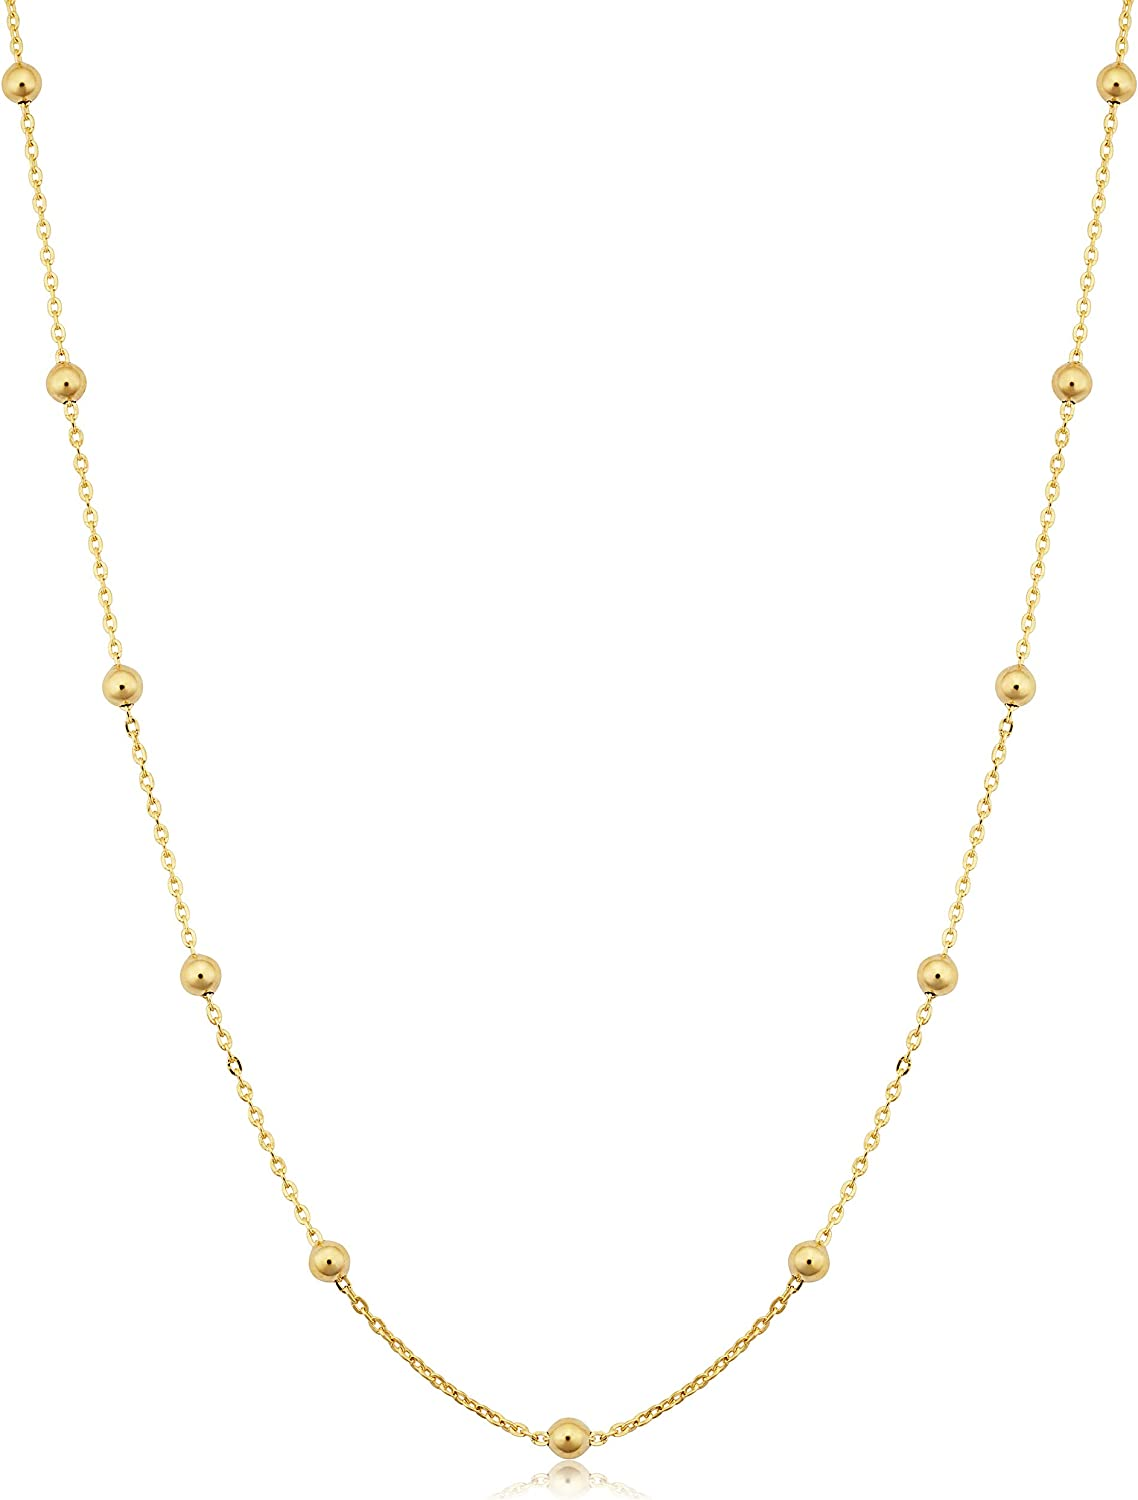 14k Yellow Gold Filled 3 mm Ball Station Satellite Necklace for Women (16, 18, 20, 24 or 30 inch)